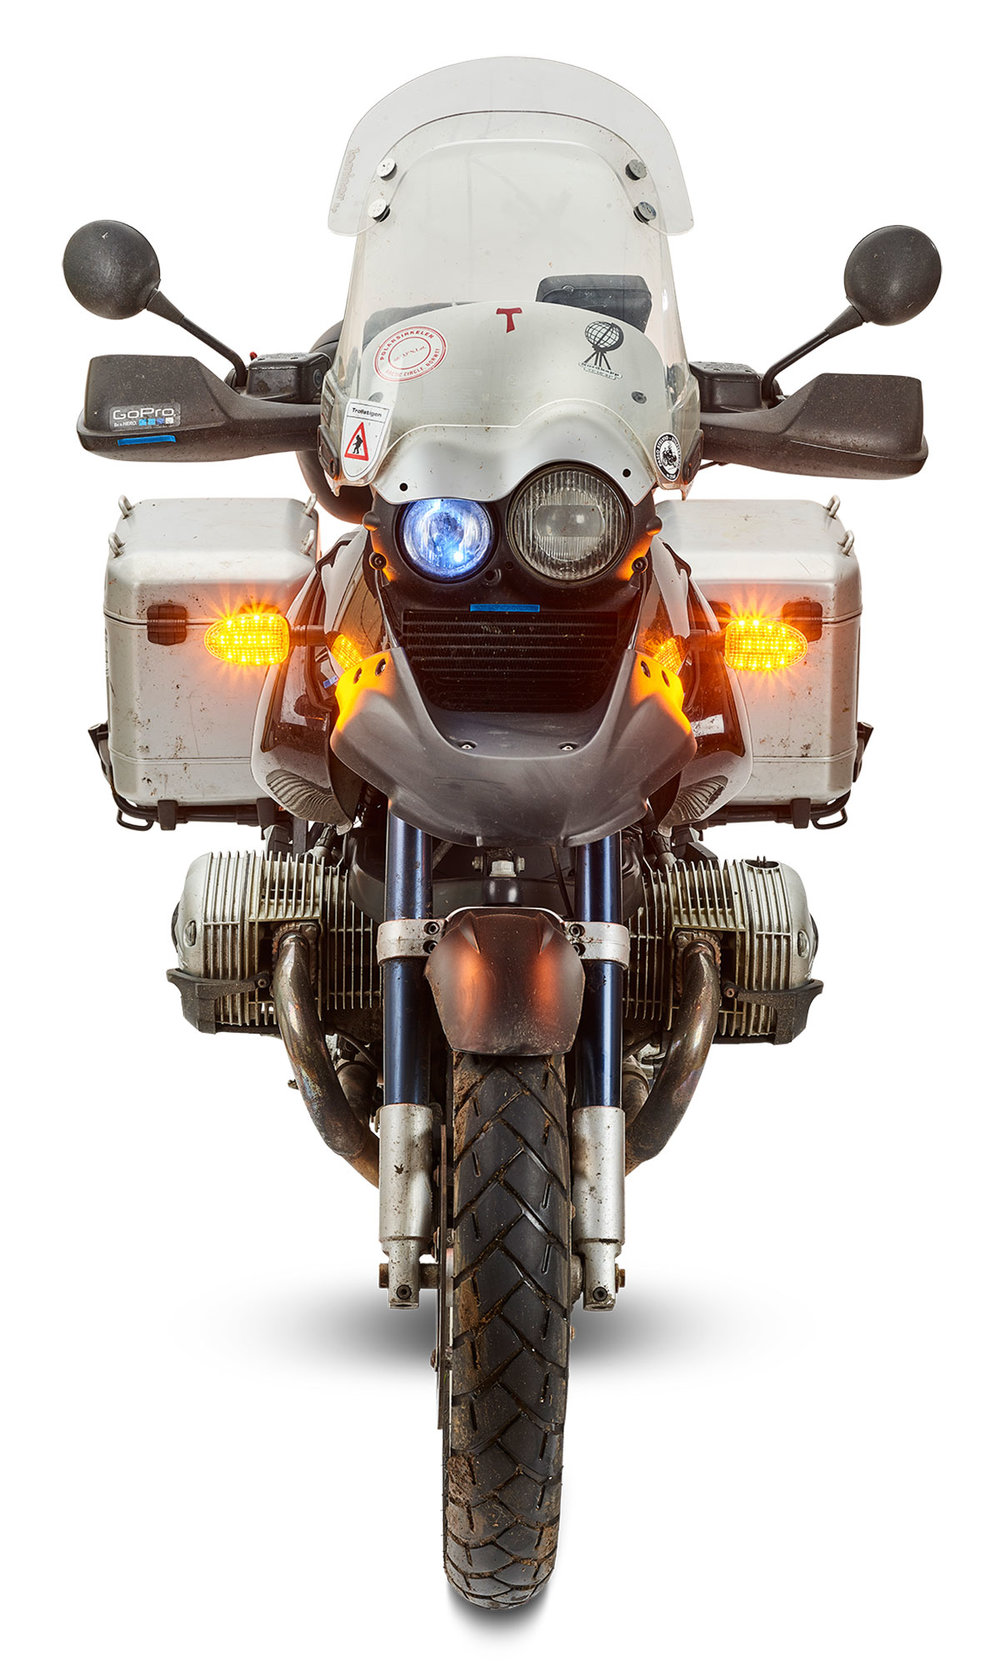 Ultrabrights Legacy II Extreme turn signal upgrades for even earlier BMW 'R, F and K' series - Even earlier BMW bikes from 1993 to 2004